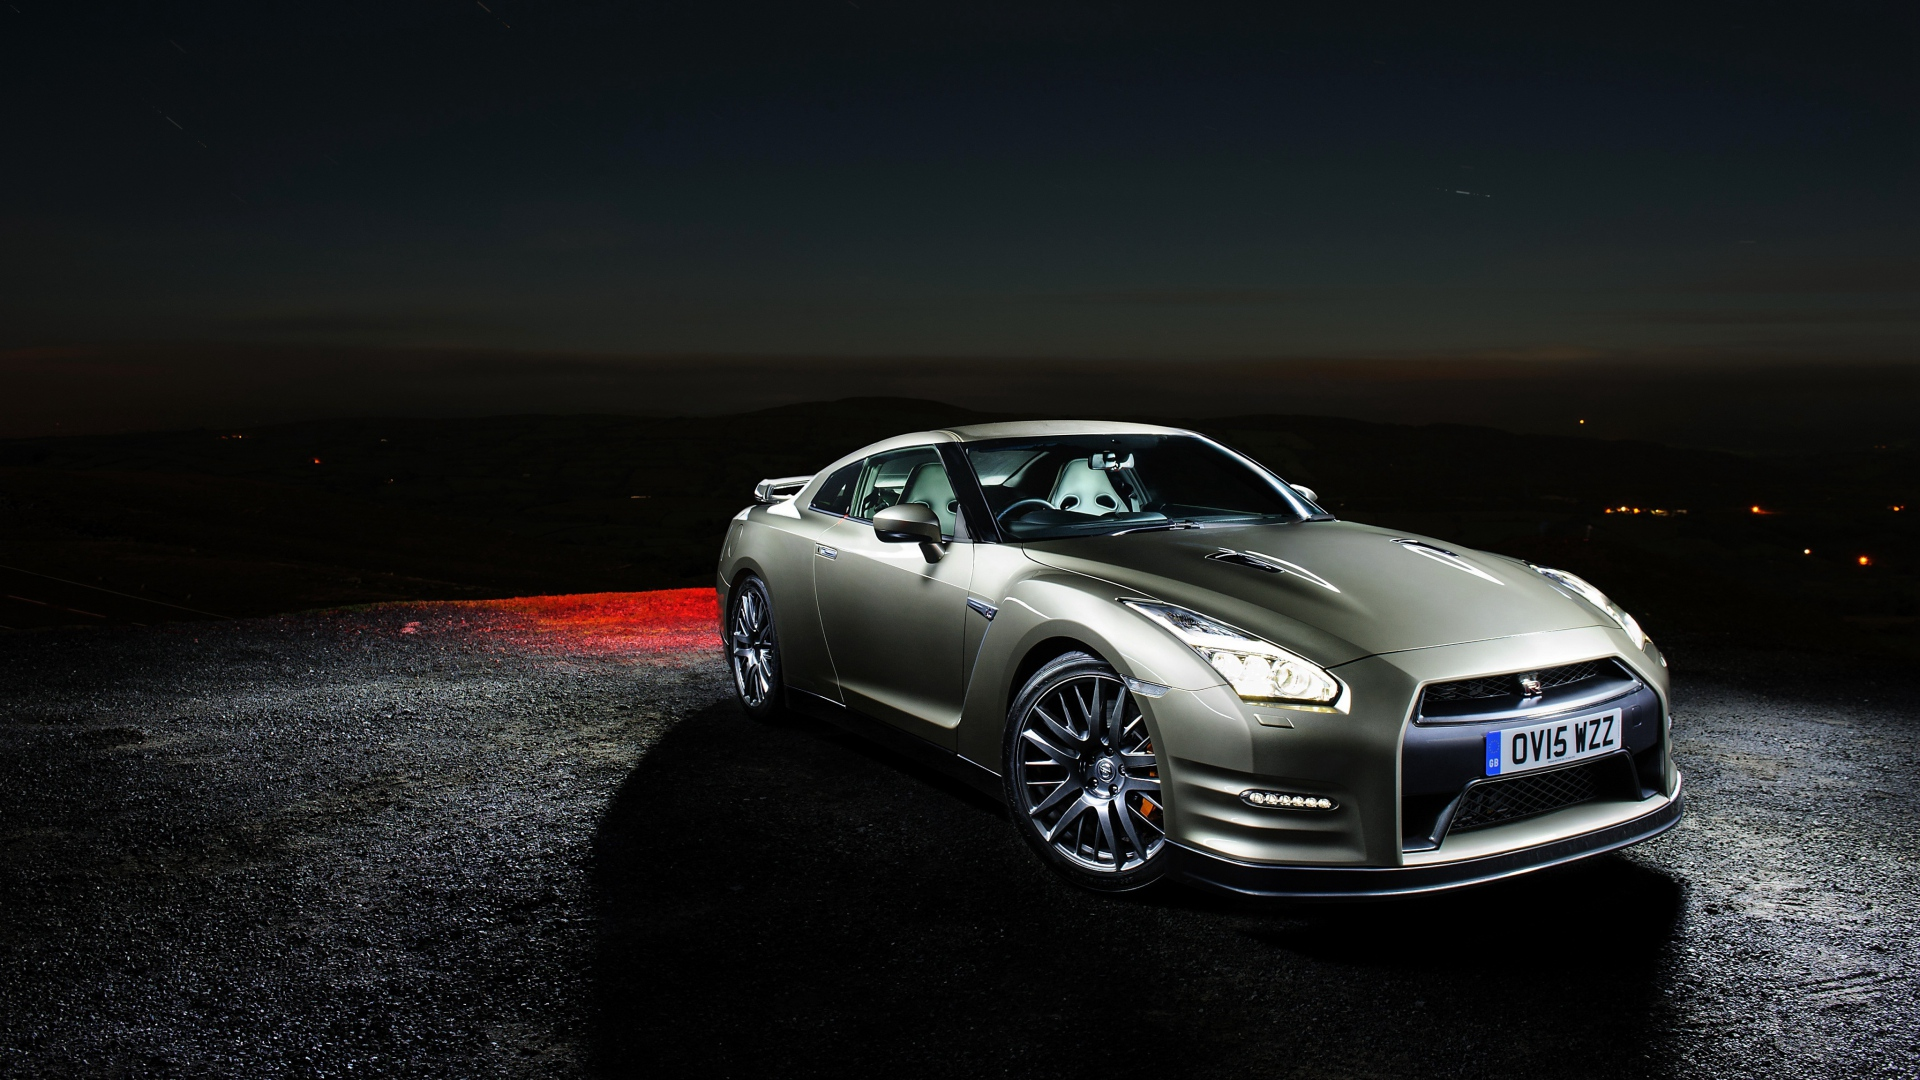 Nissan GT R Backgrounds and Images 44   BSCB Wallpapers 1920x1080